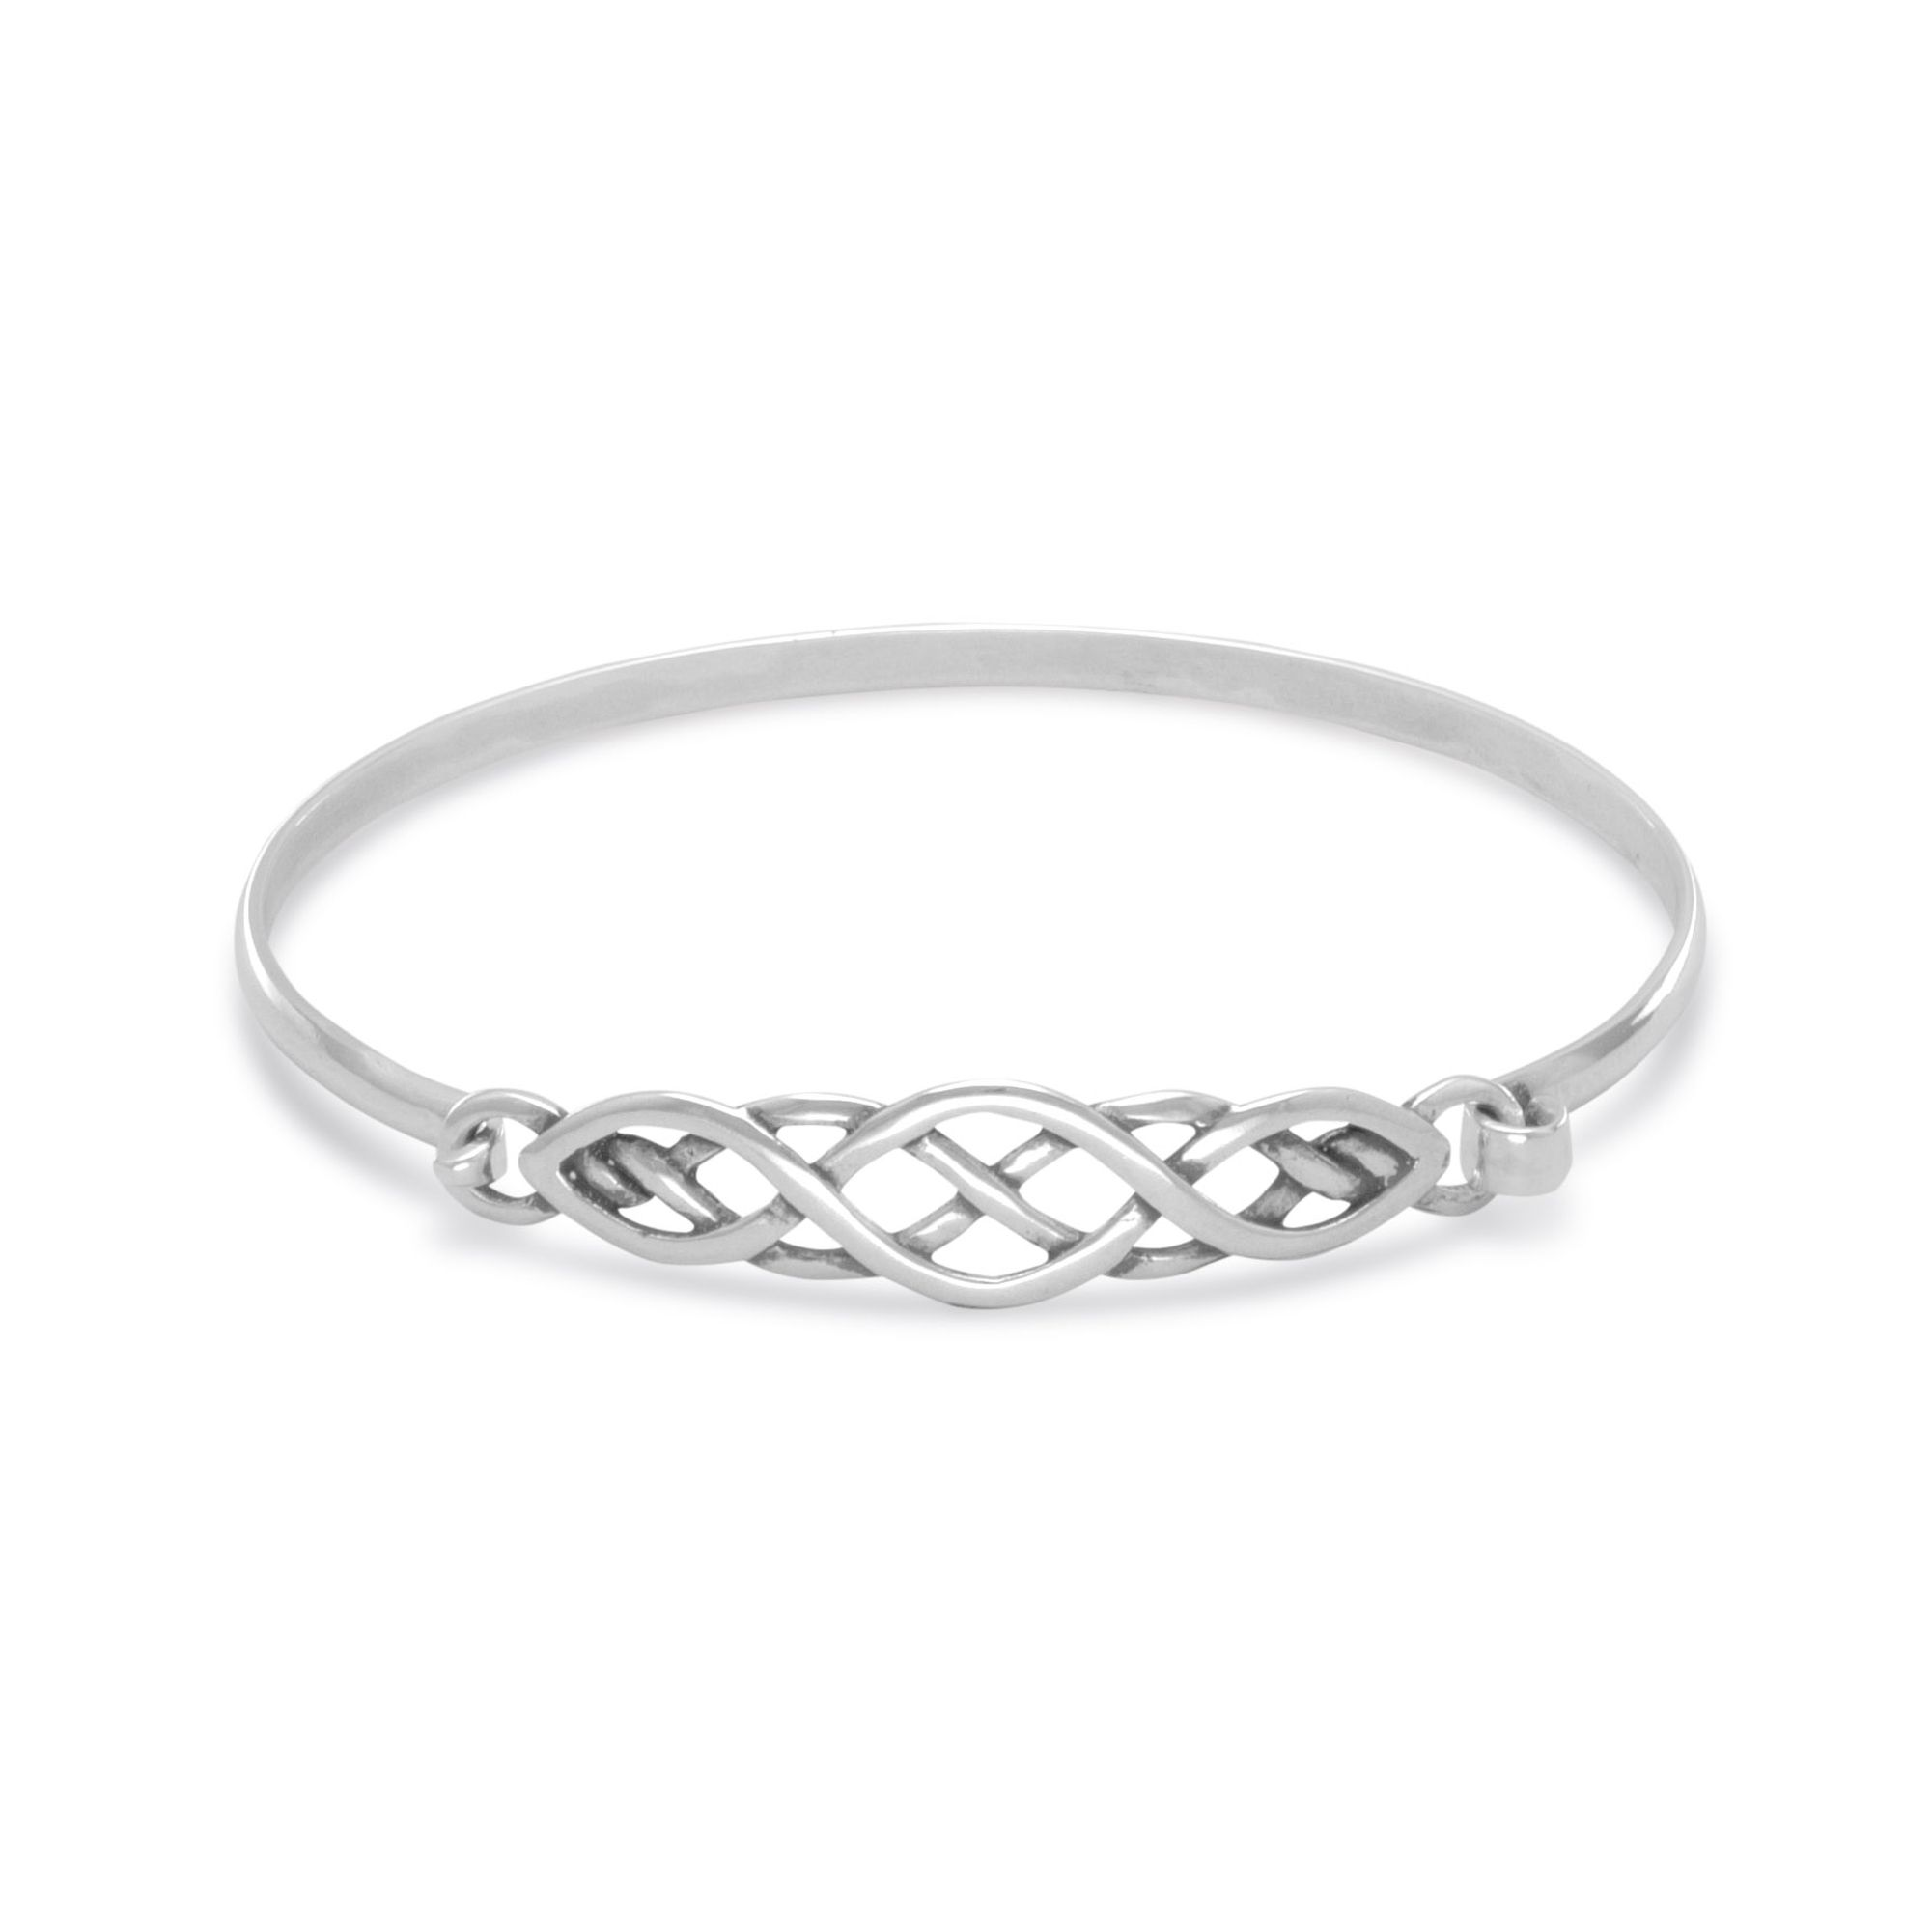 bangle august muehling bangles bracelet shop insp bracelets simple plain ted sterling silver